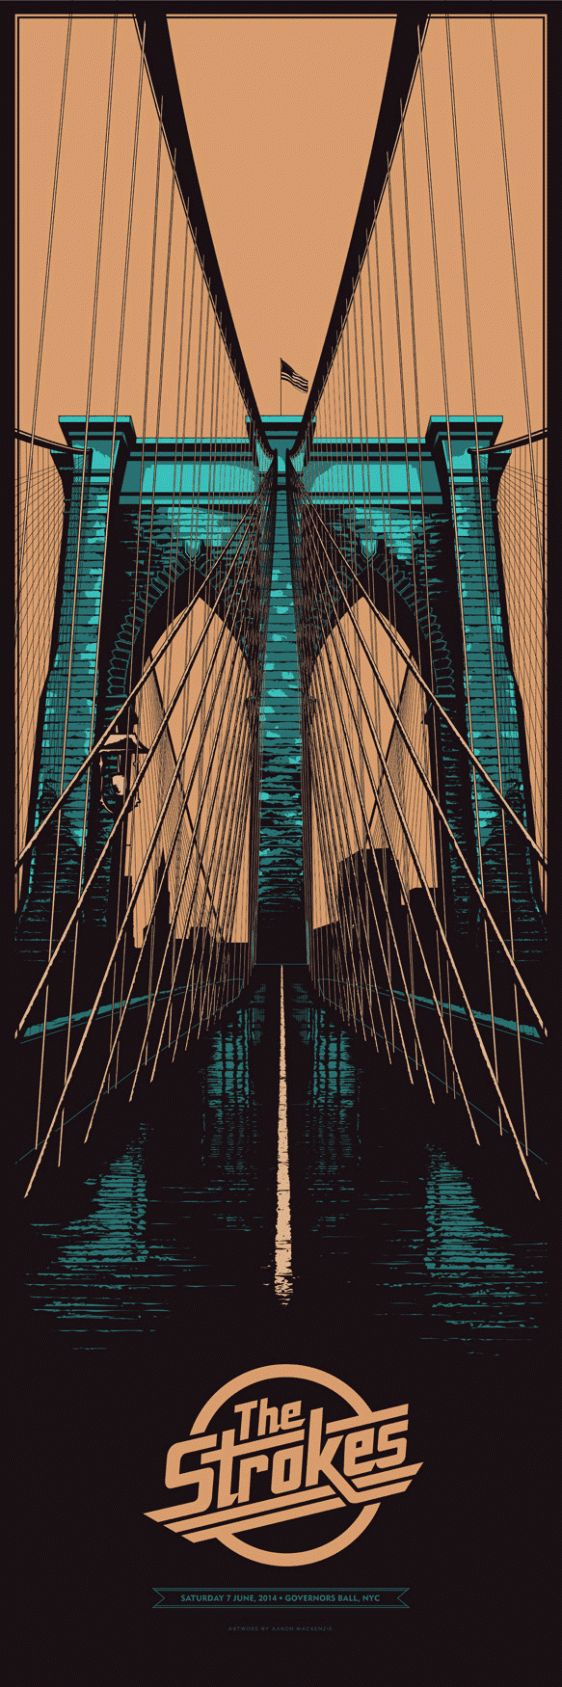 THE STROKES - BROOKLYN BRIDGE GIG POSTER by Ken Taylor